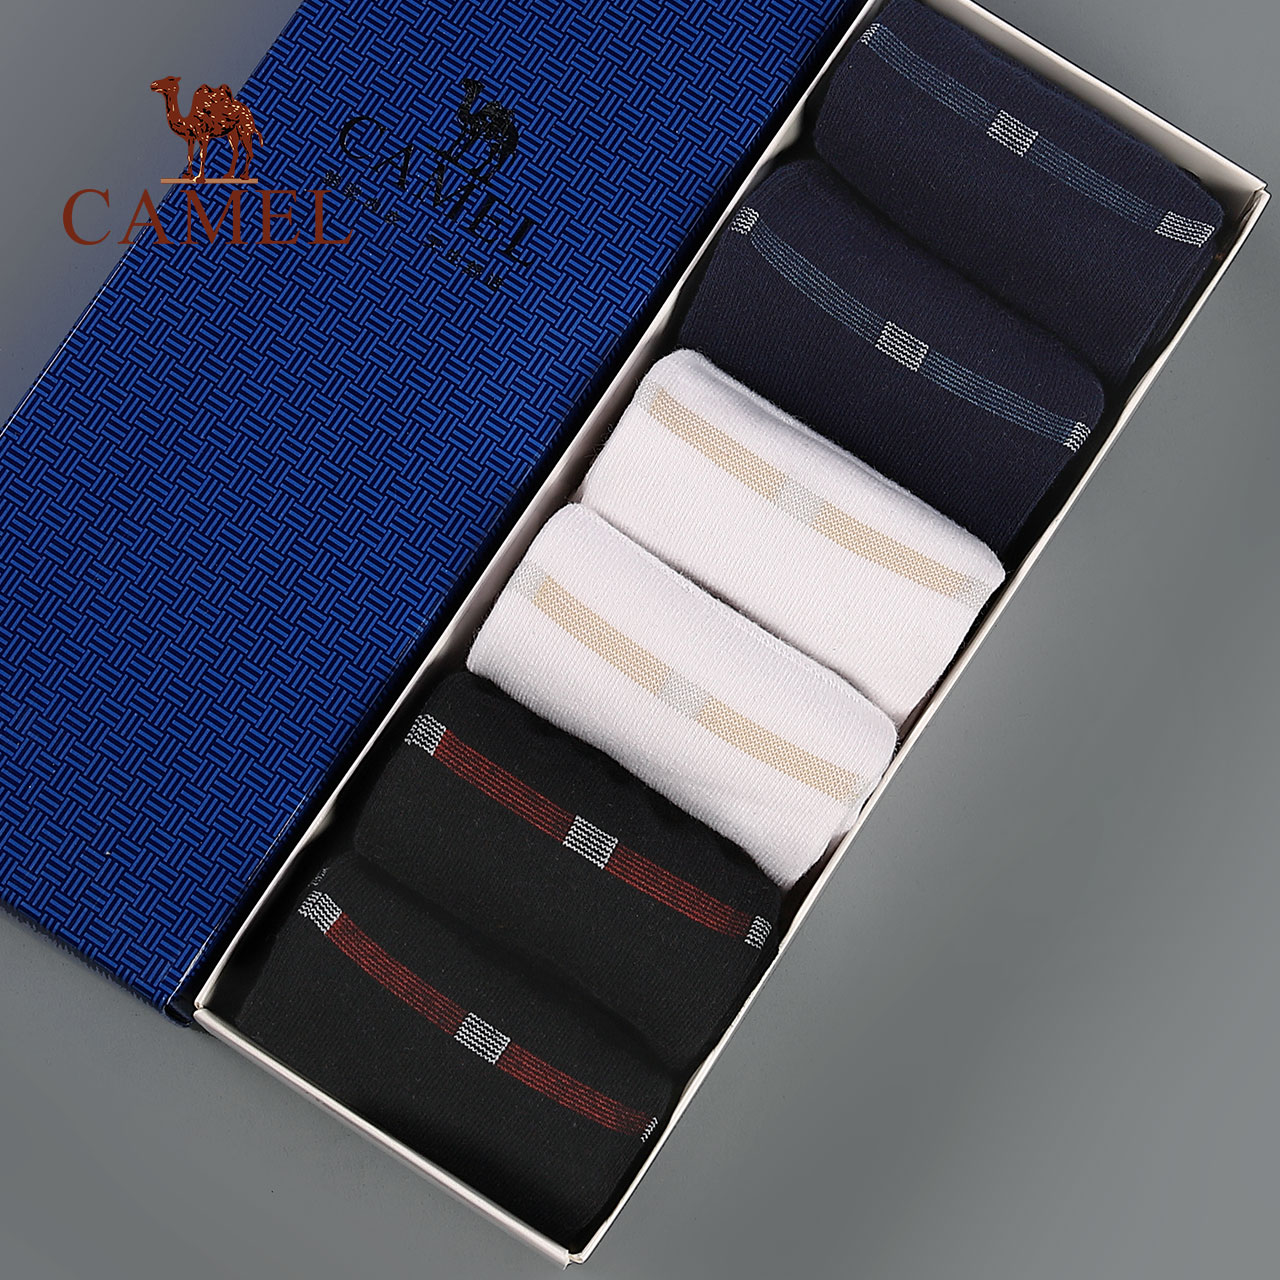 6 pairs of loaded camel socks men's cotton tube socks female autumn and winter boat socks sweat deodorant cotton socks thick stockings tide